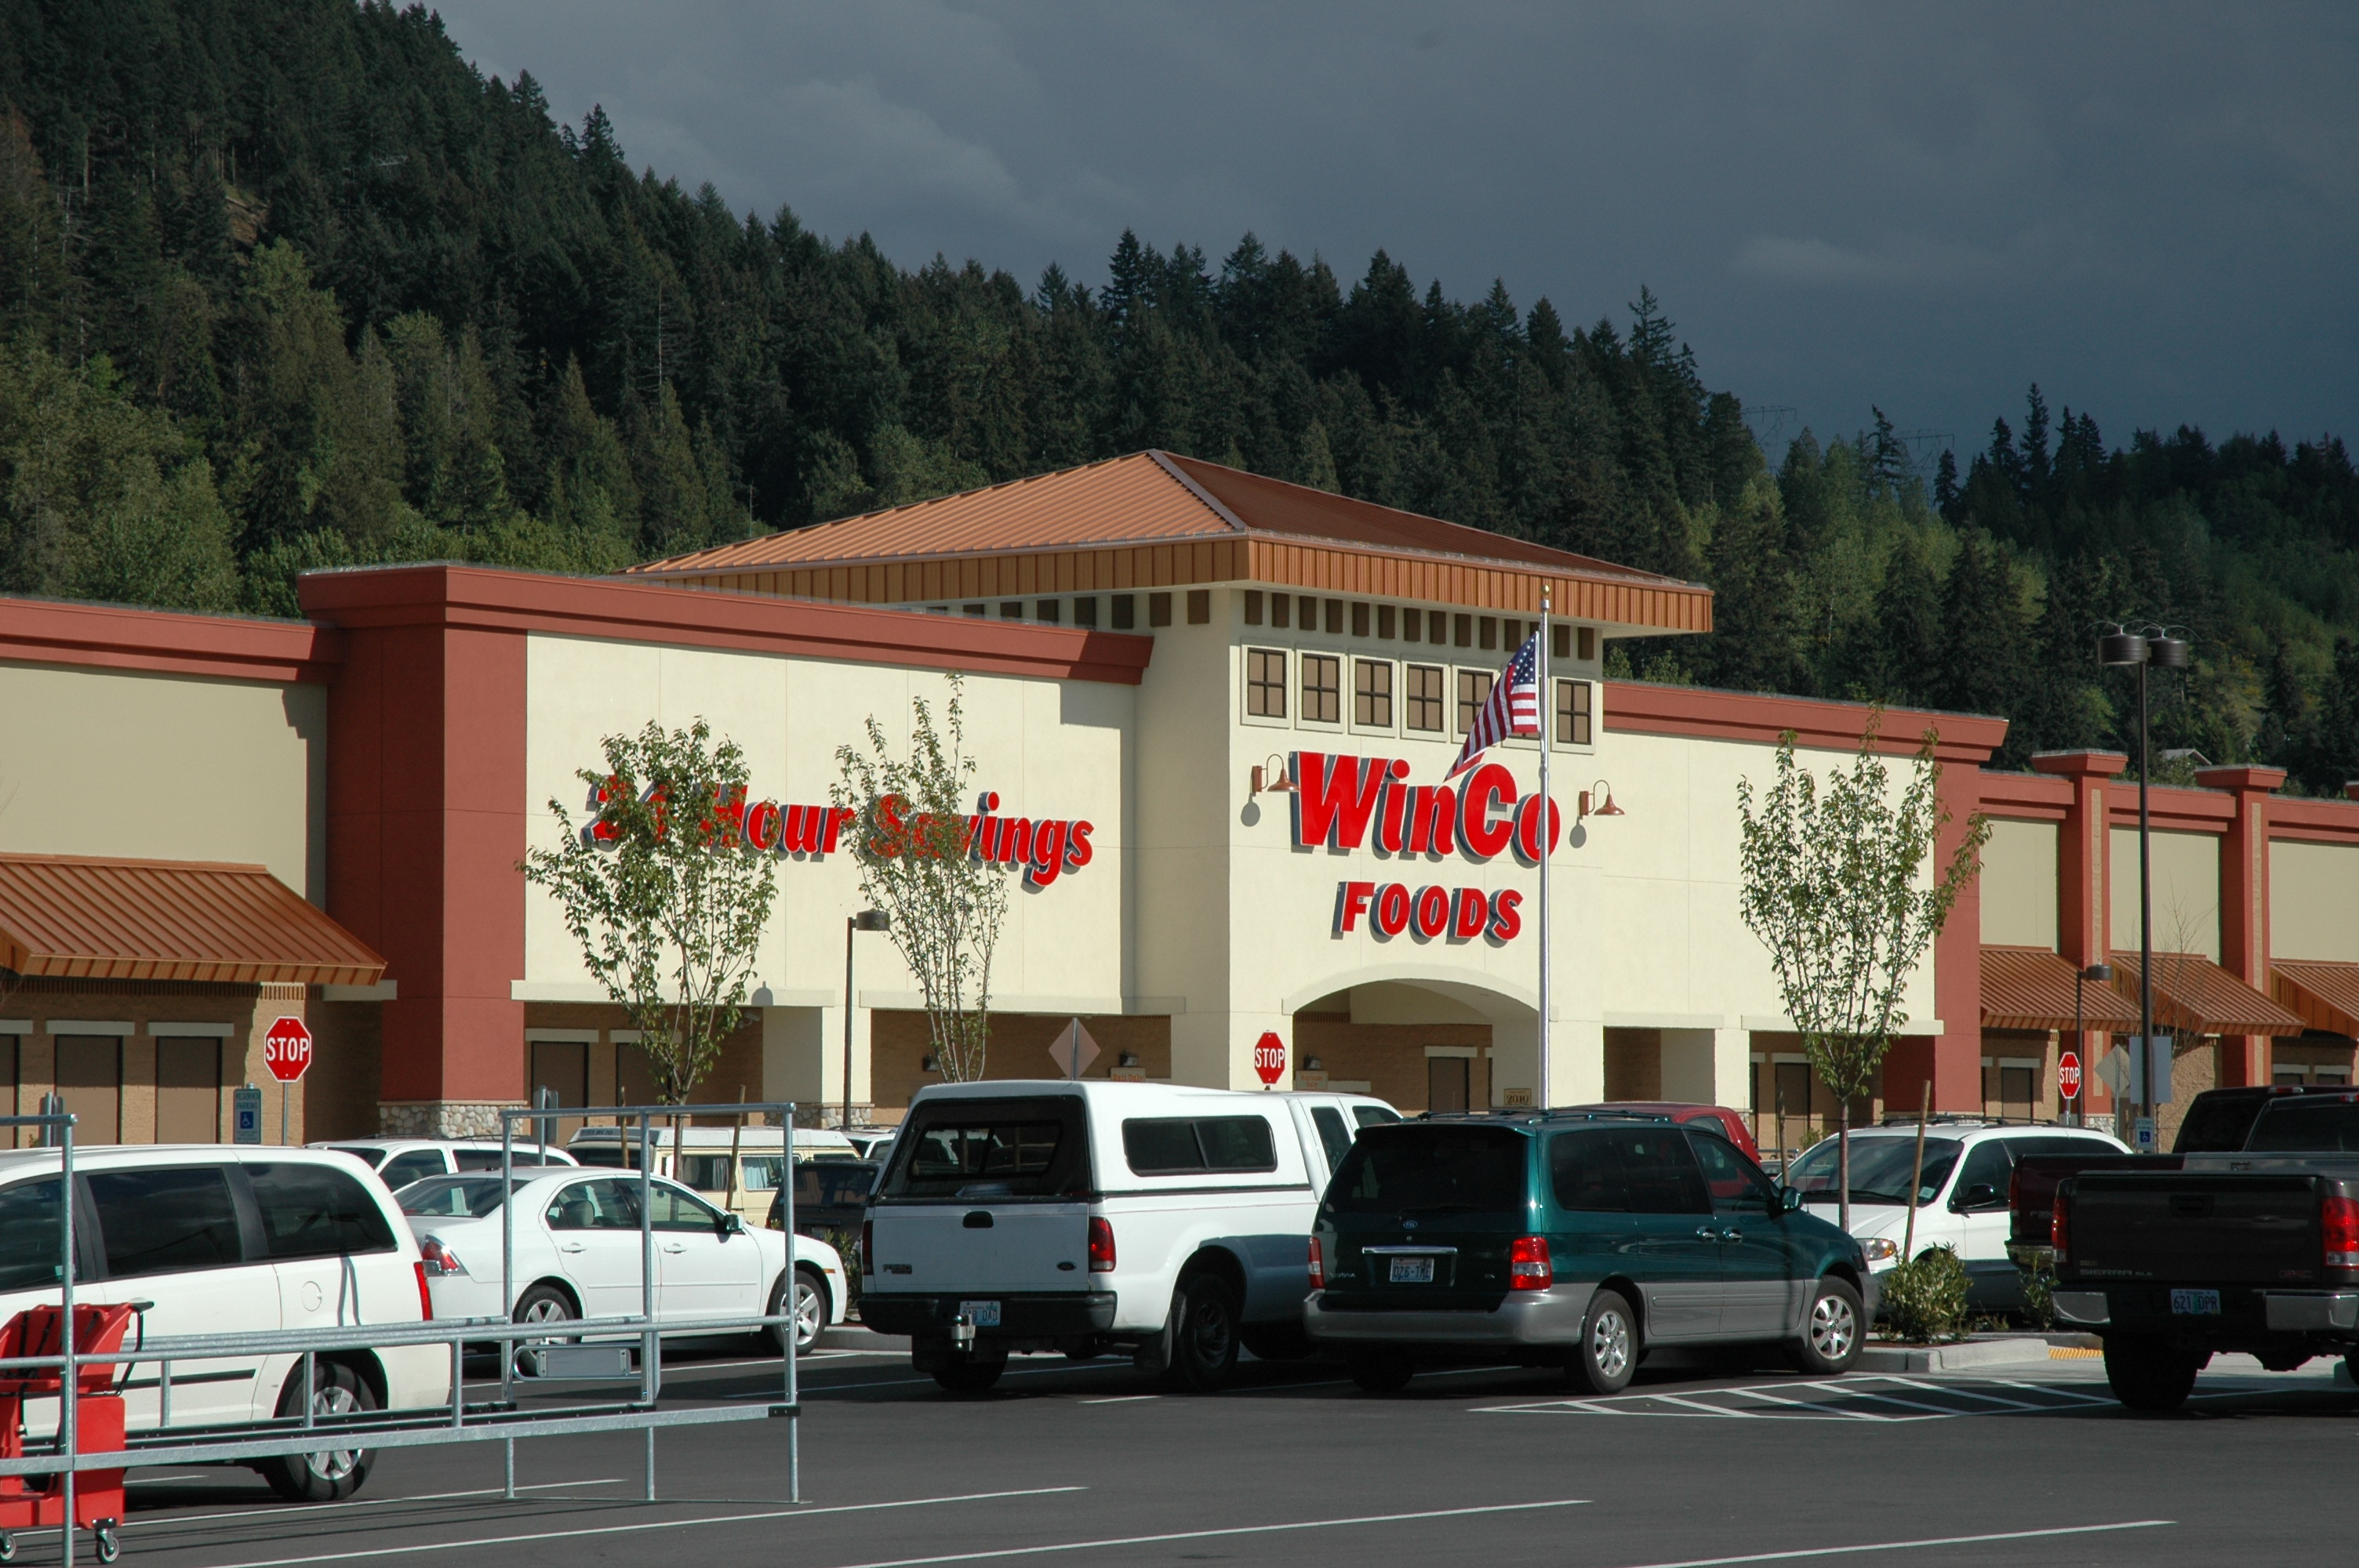 Winco Christmas Eve Hours.Winco Foods Holiday Hours Location Near Me Us Holiday Hours